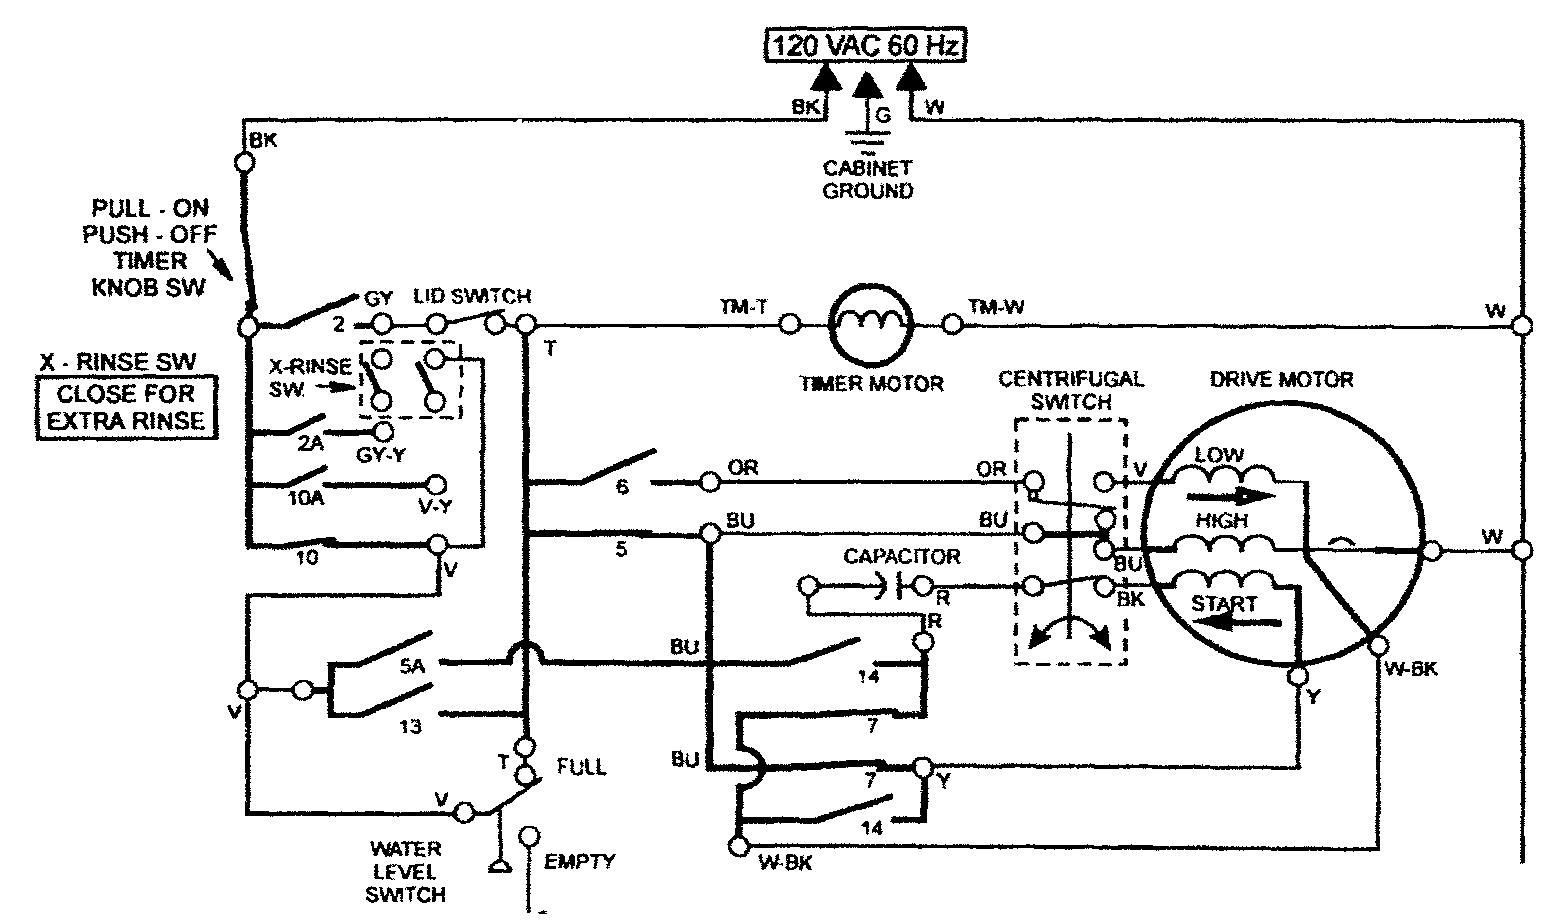 Appliance Course Module Five Figure 5 49 mat course module five sample page washing machine motor wiring diagram at crackthecode.co